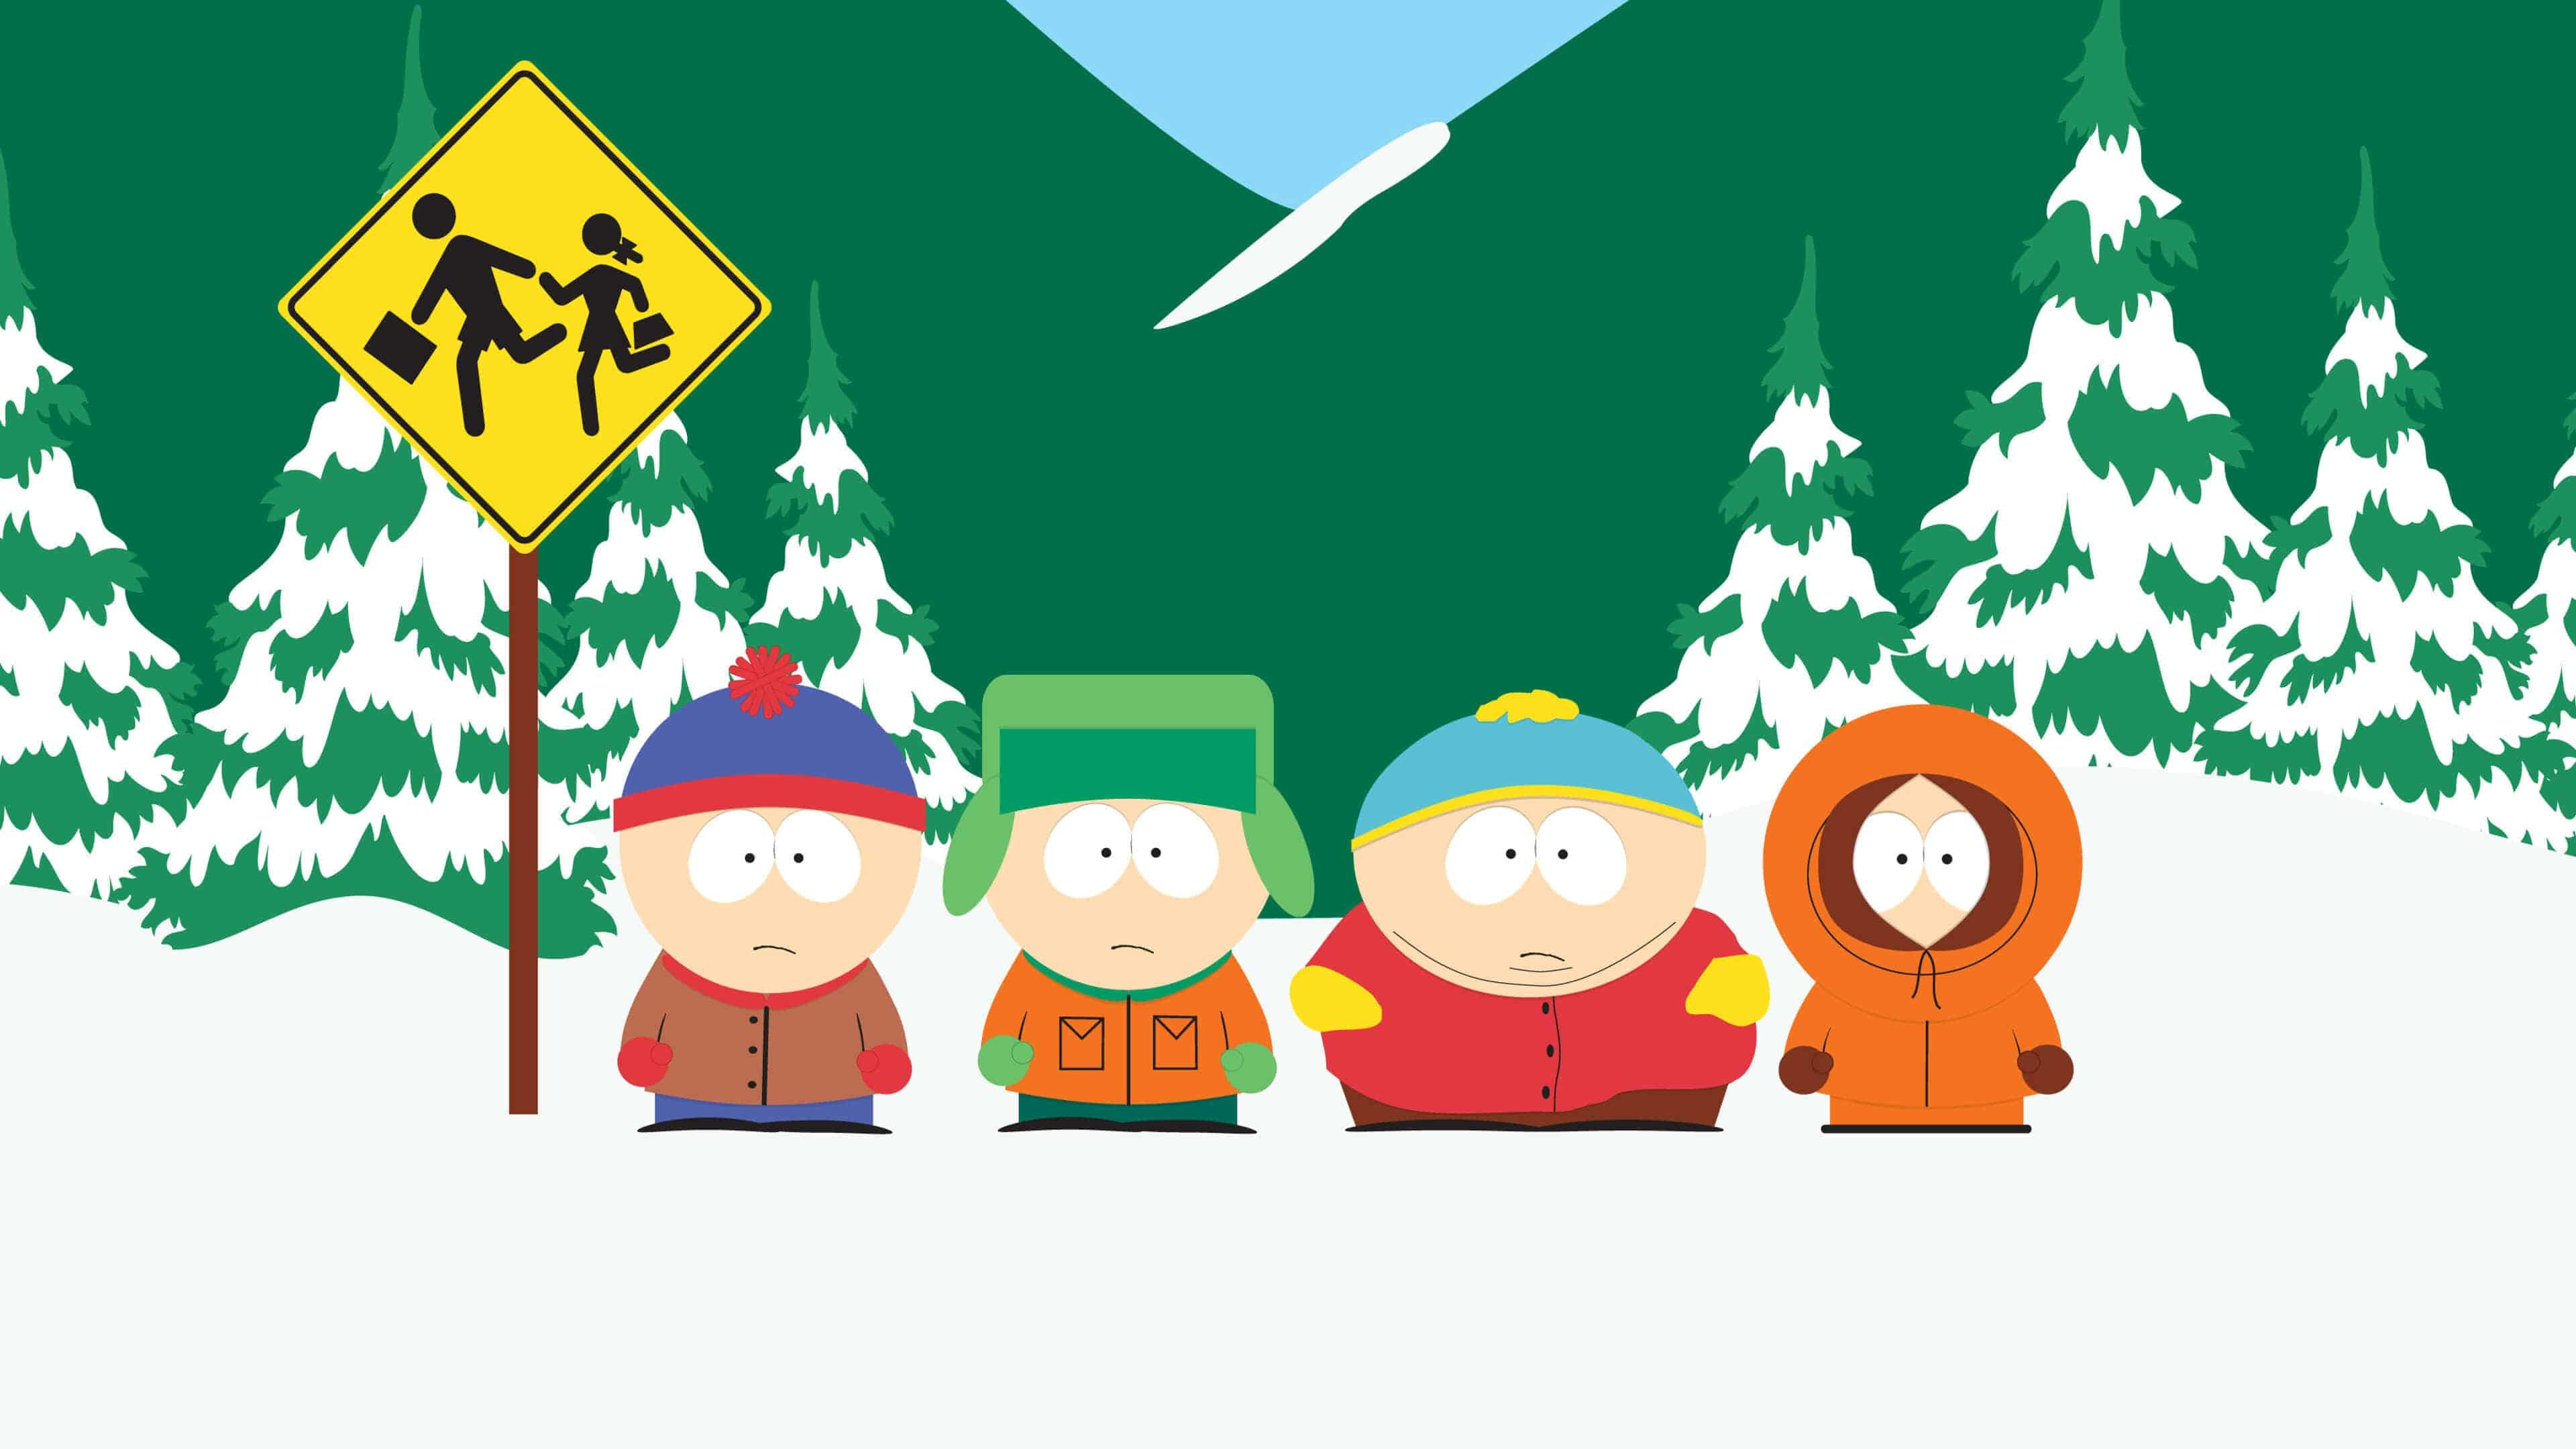 3840x2160 south park kenny wallpaper #658314